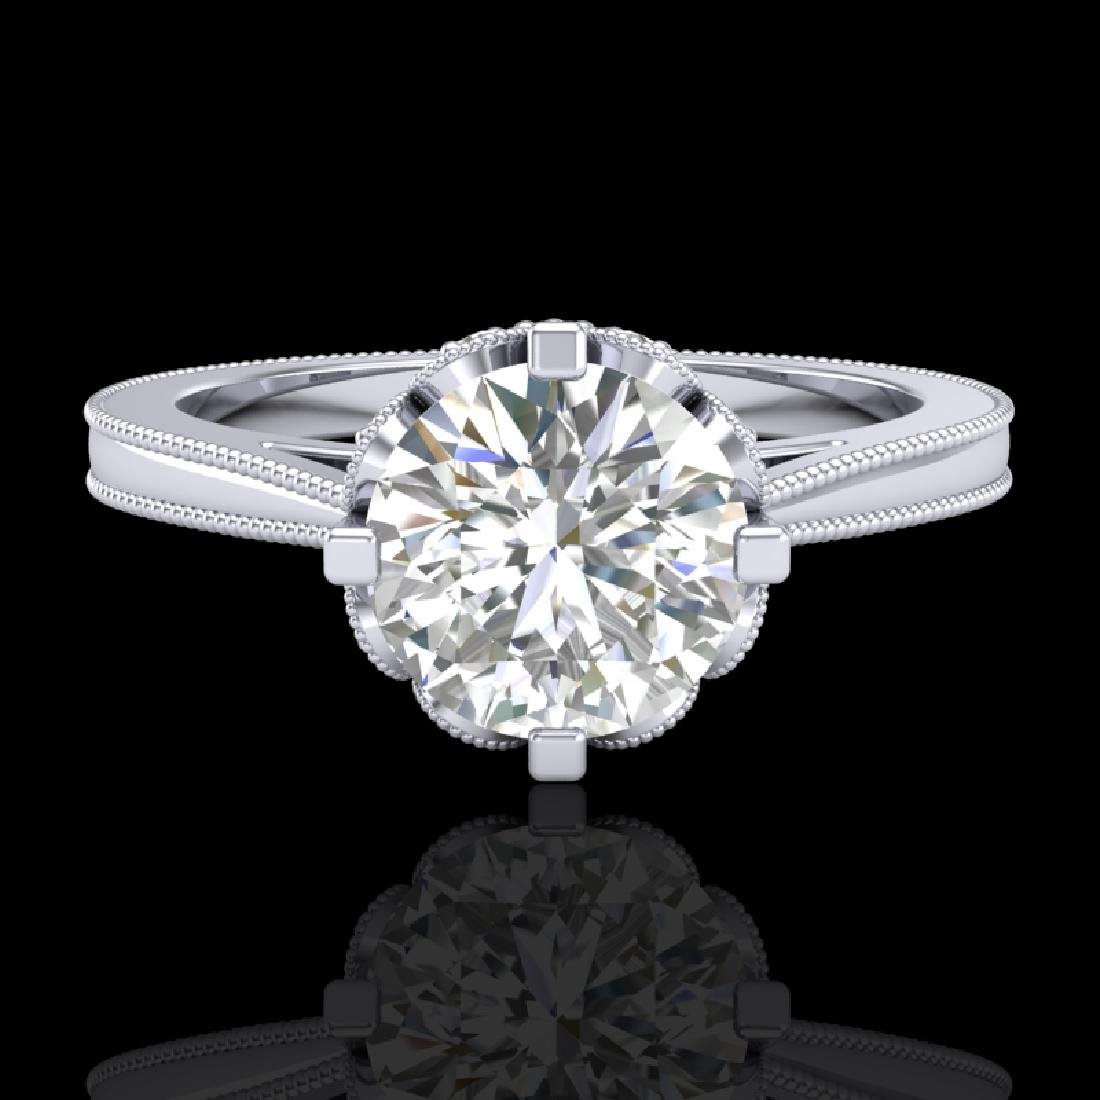 1.5 CTW VS/SI Diamond Art Deco Ring 18K White Gold - 2